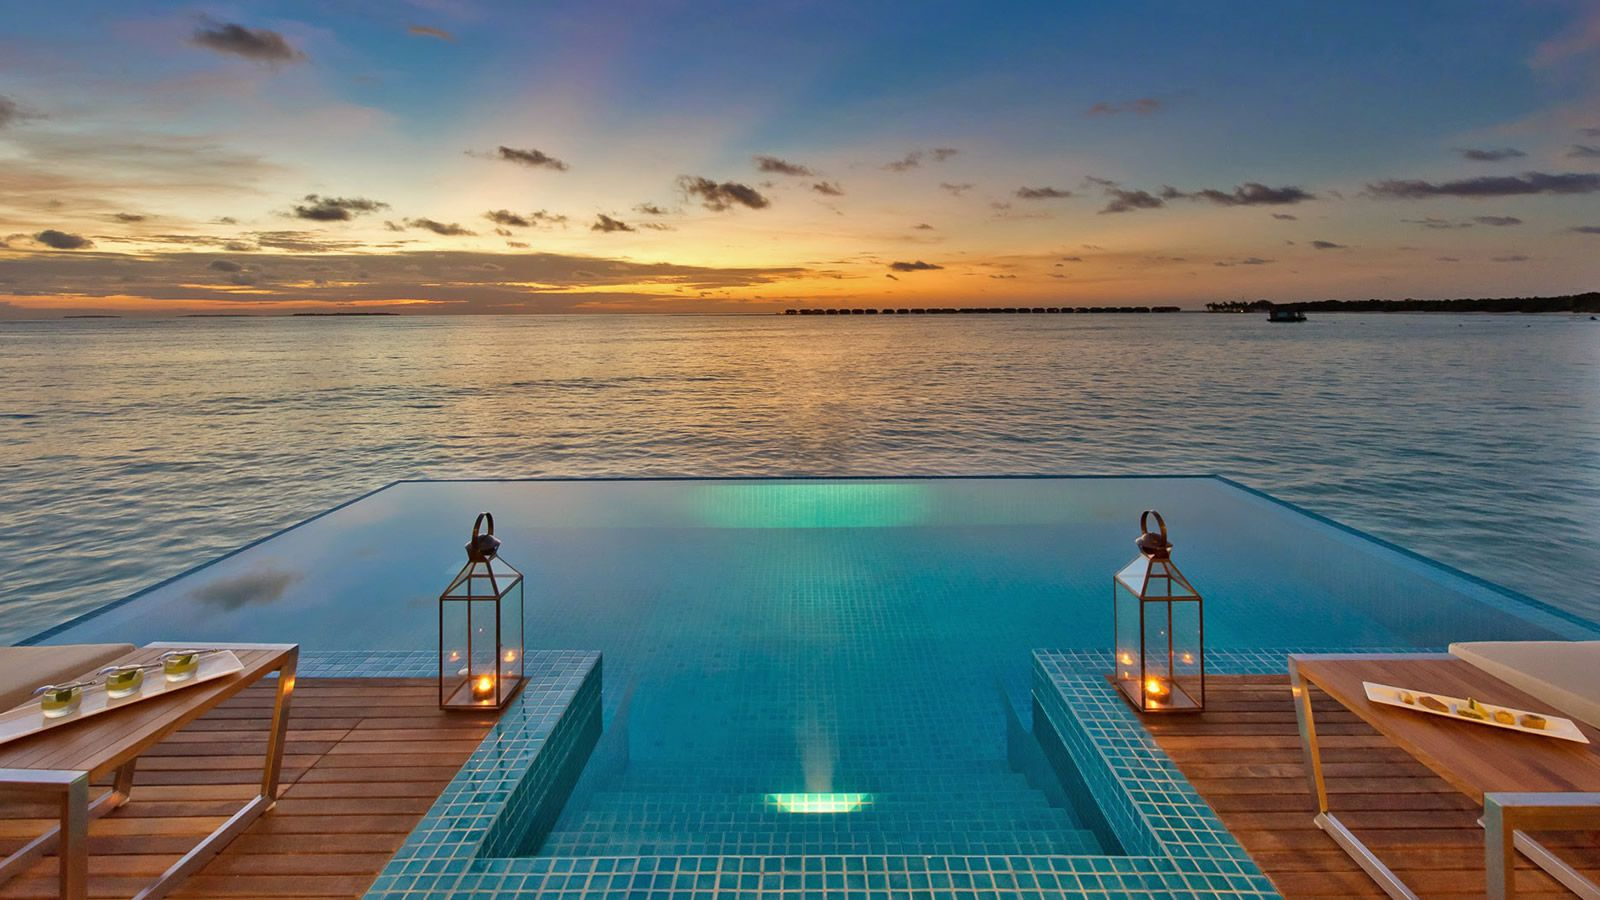 Maldives Resorts  Maldives Beach Resort  Hideaway Luxury